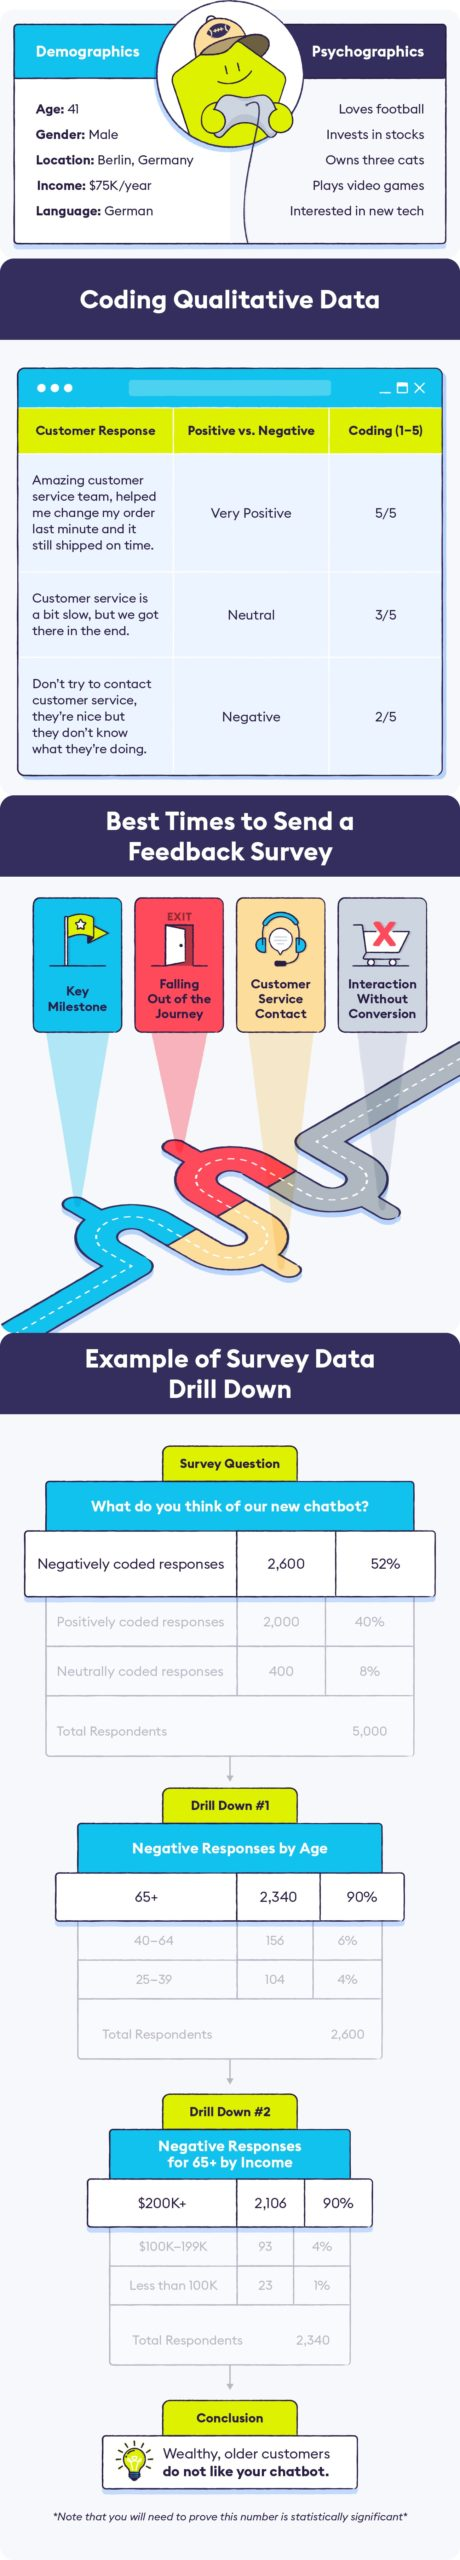 Customer survey data analysis Infographic Image